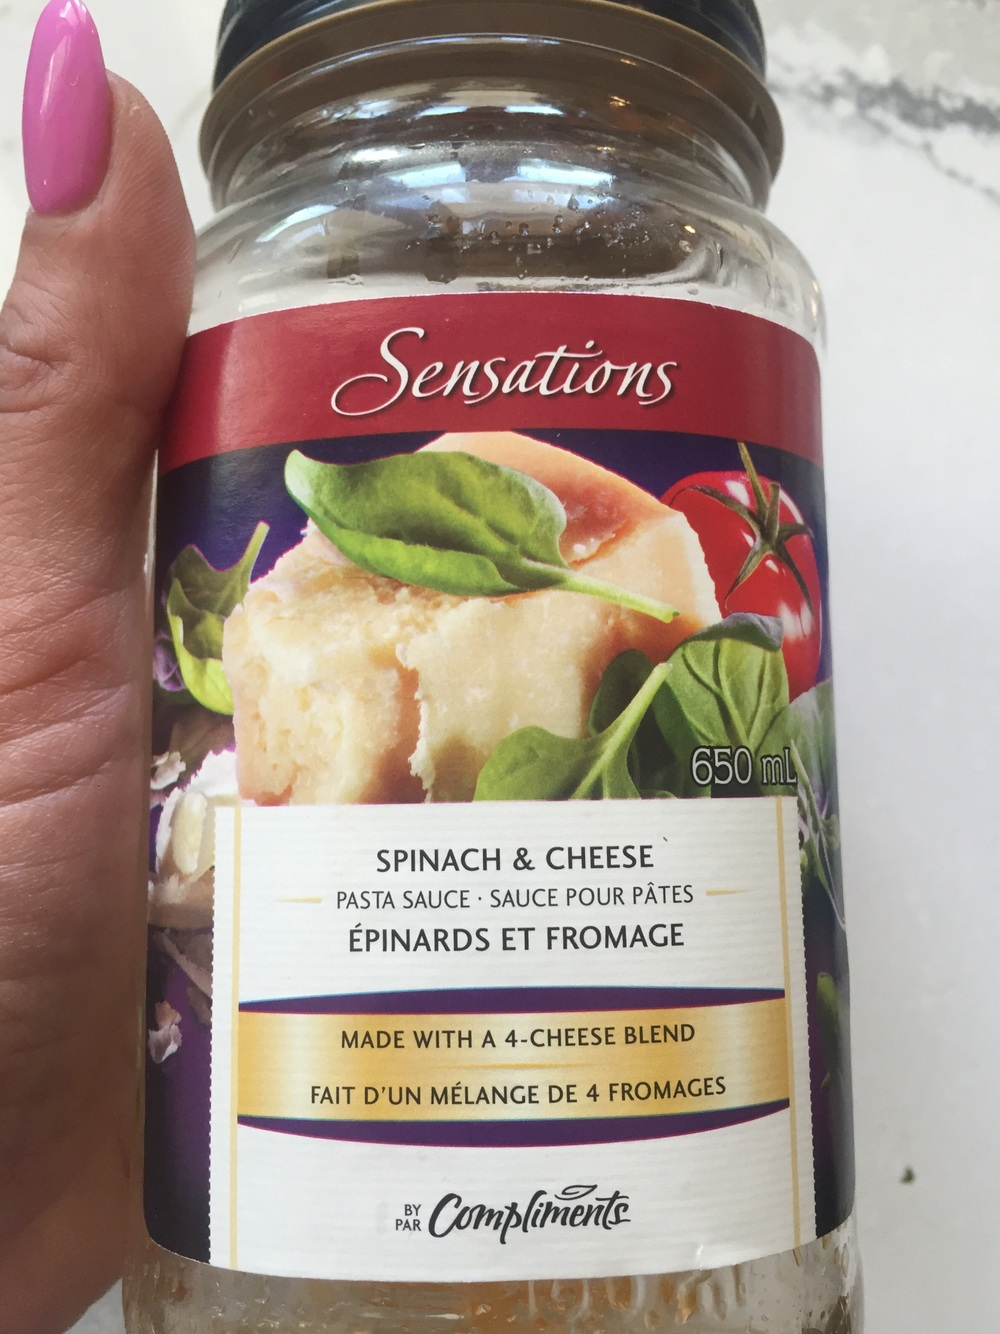 I buy already prepared sauce to make my life a little easier(because I usually make homemade sauce as well.) I like the sensations brand, by compliments, and I also love the Classico pre made sauce as well! The spinach and cheese works great for some extra flavour